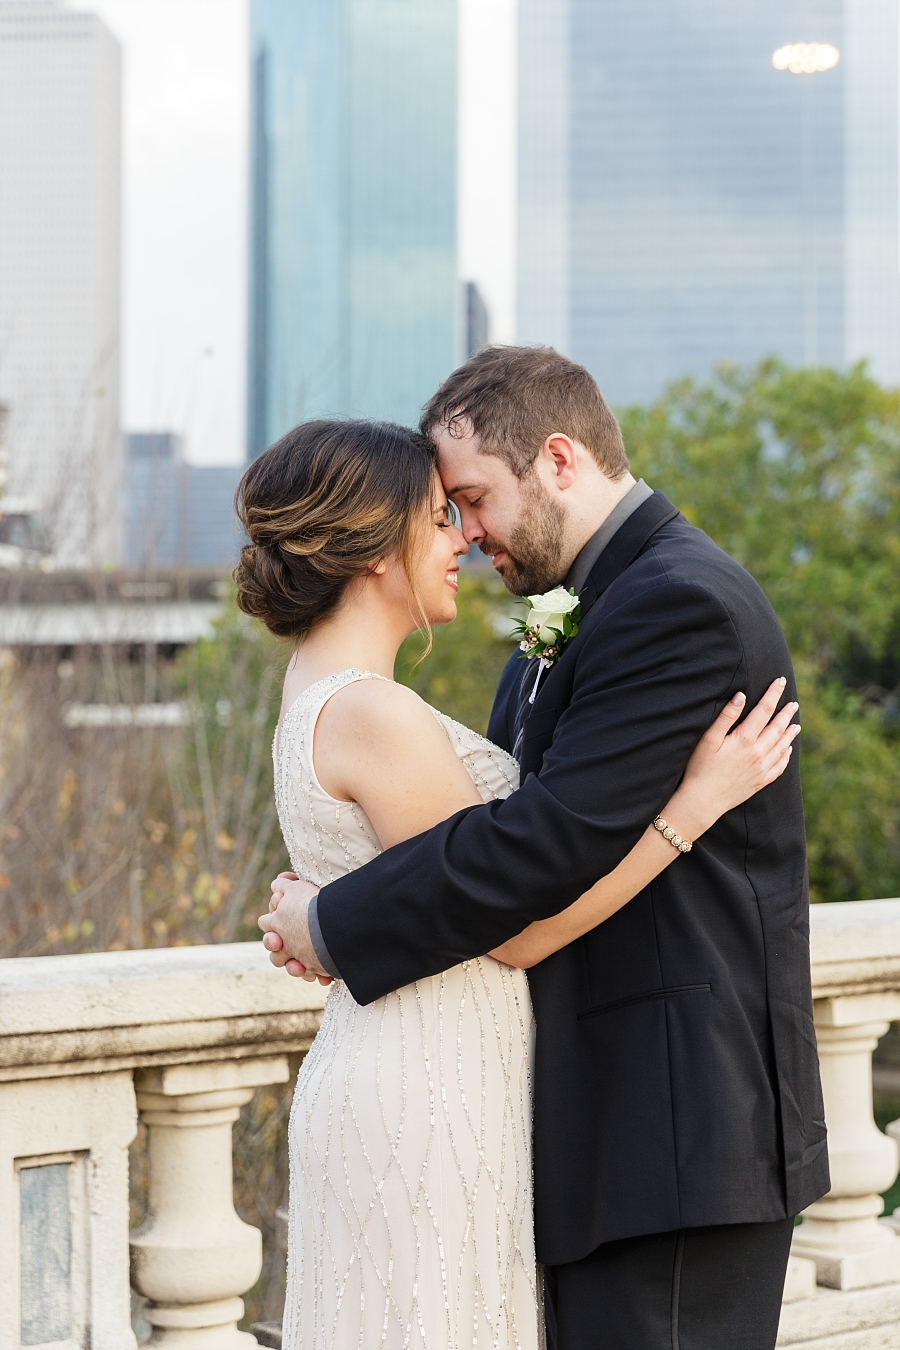 Stacy-Anderson-Photography-Houston-Courthouse-Vic-Anthony-Wedding-Photographer_0006.jpg